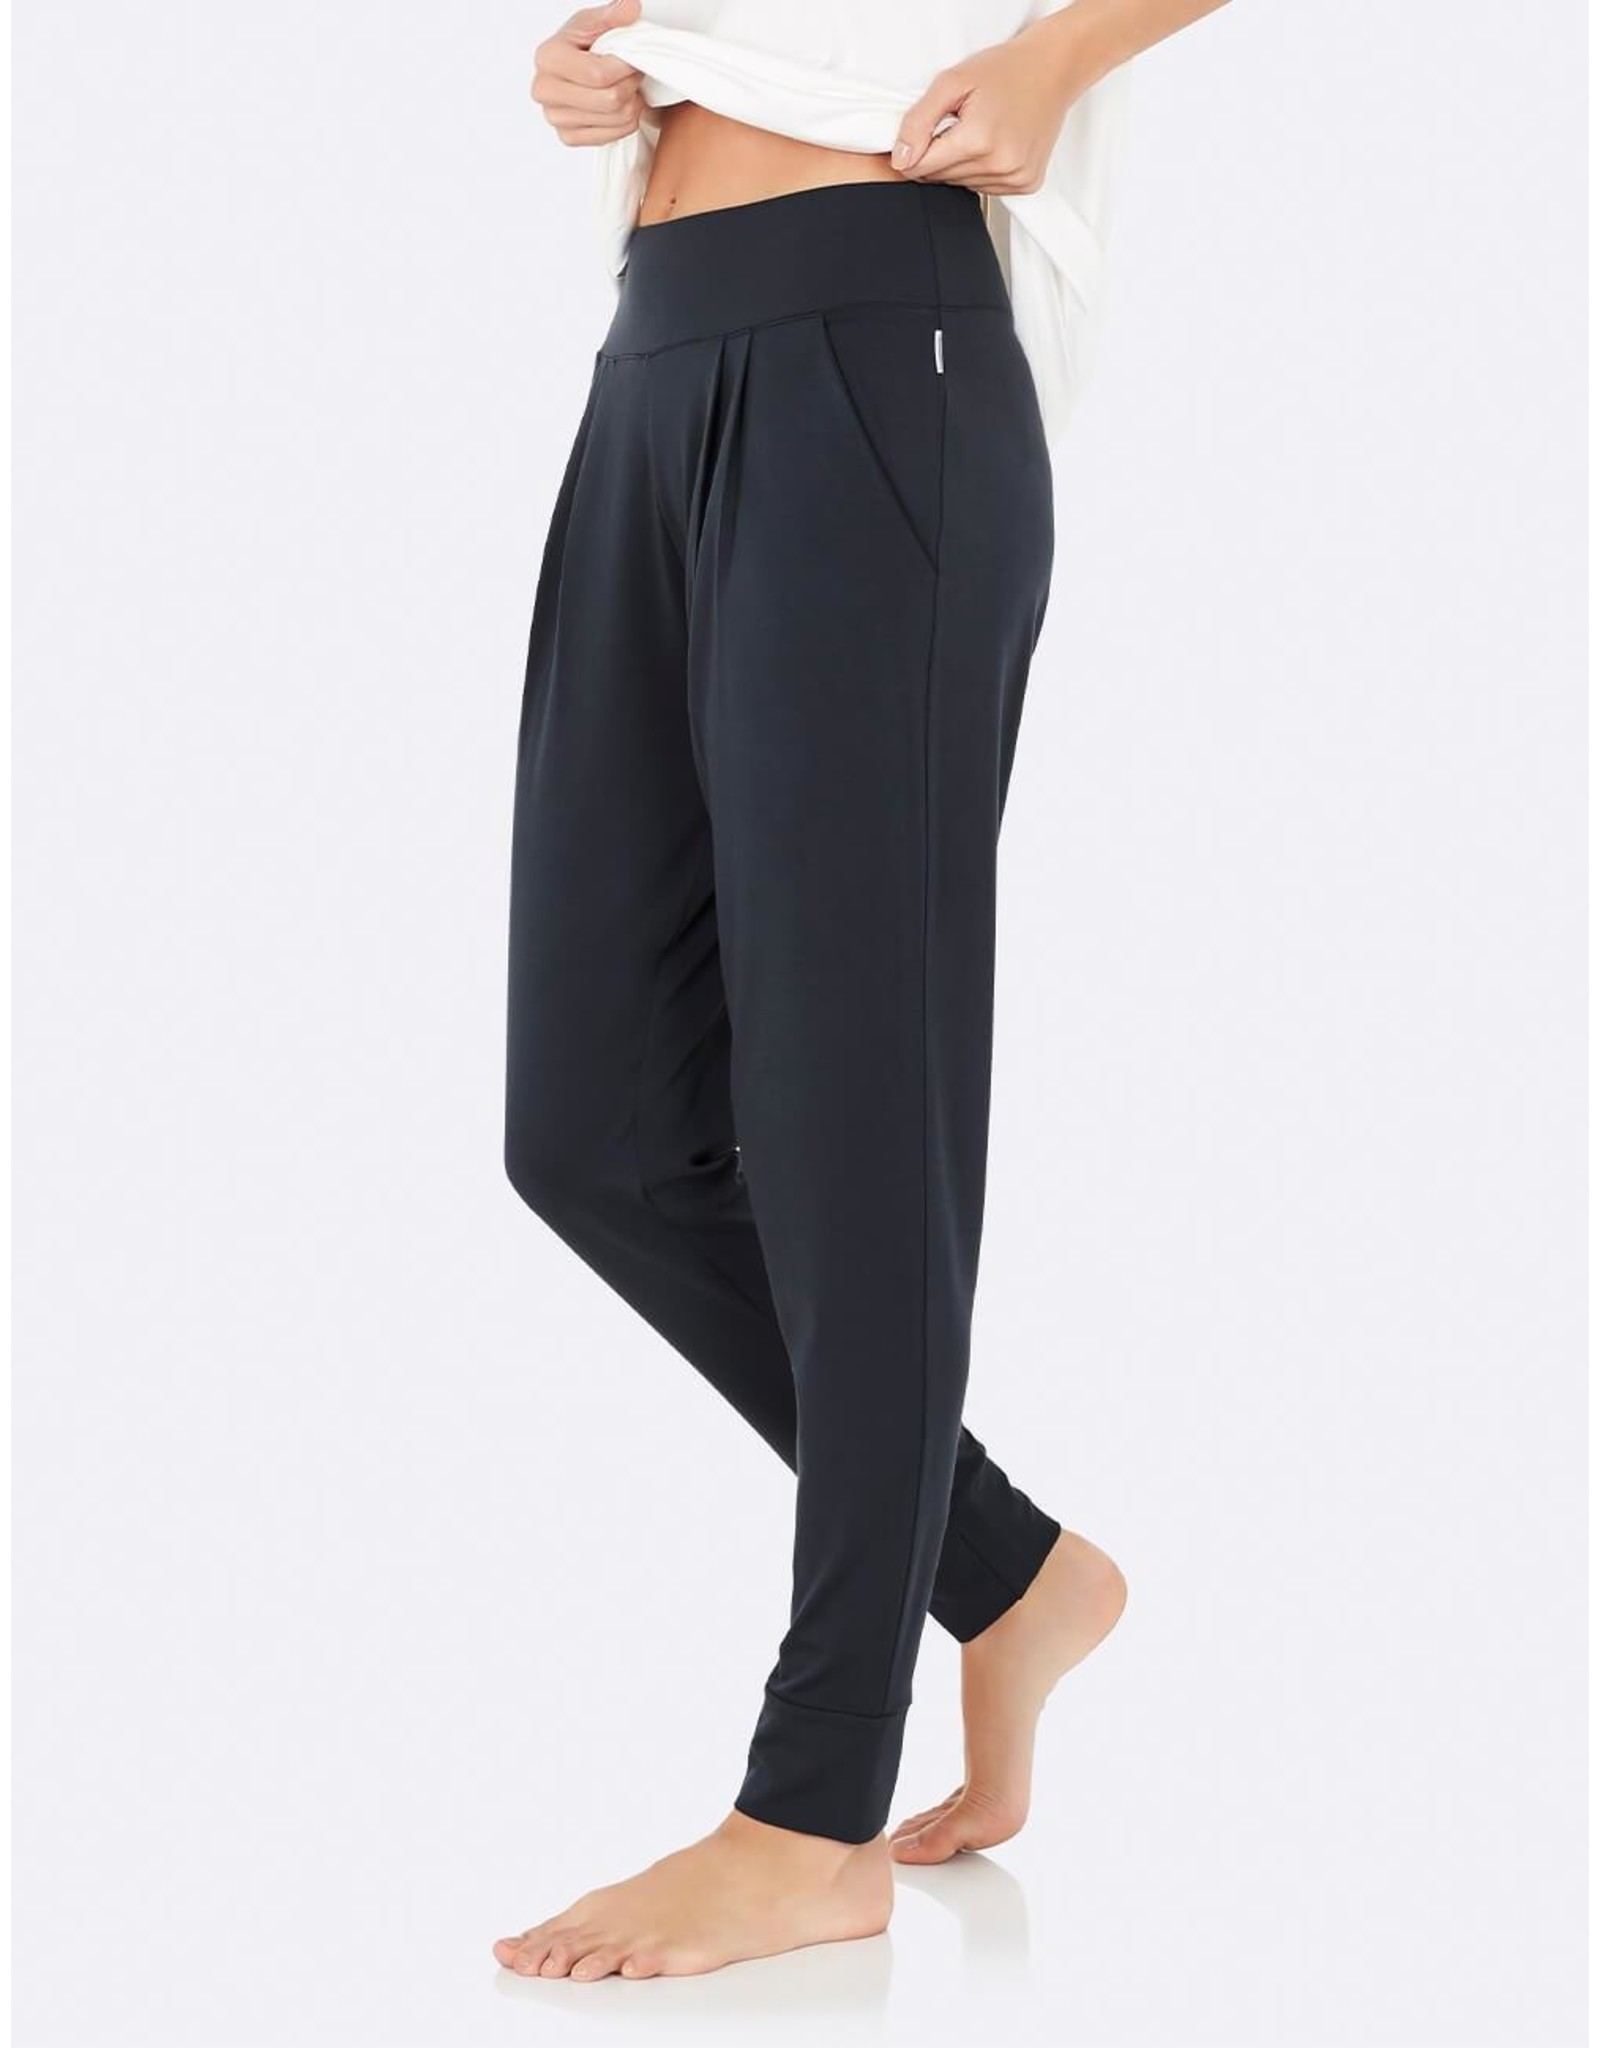 Downtime Lounge Pant